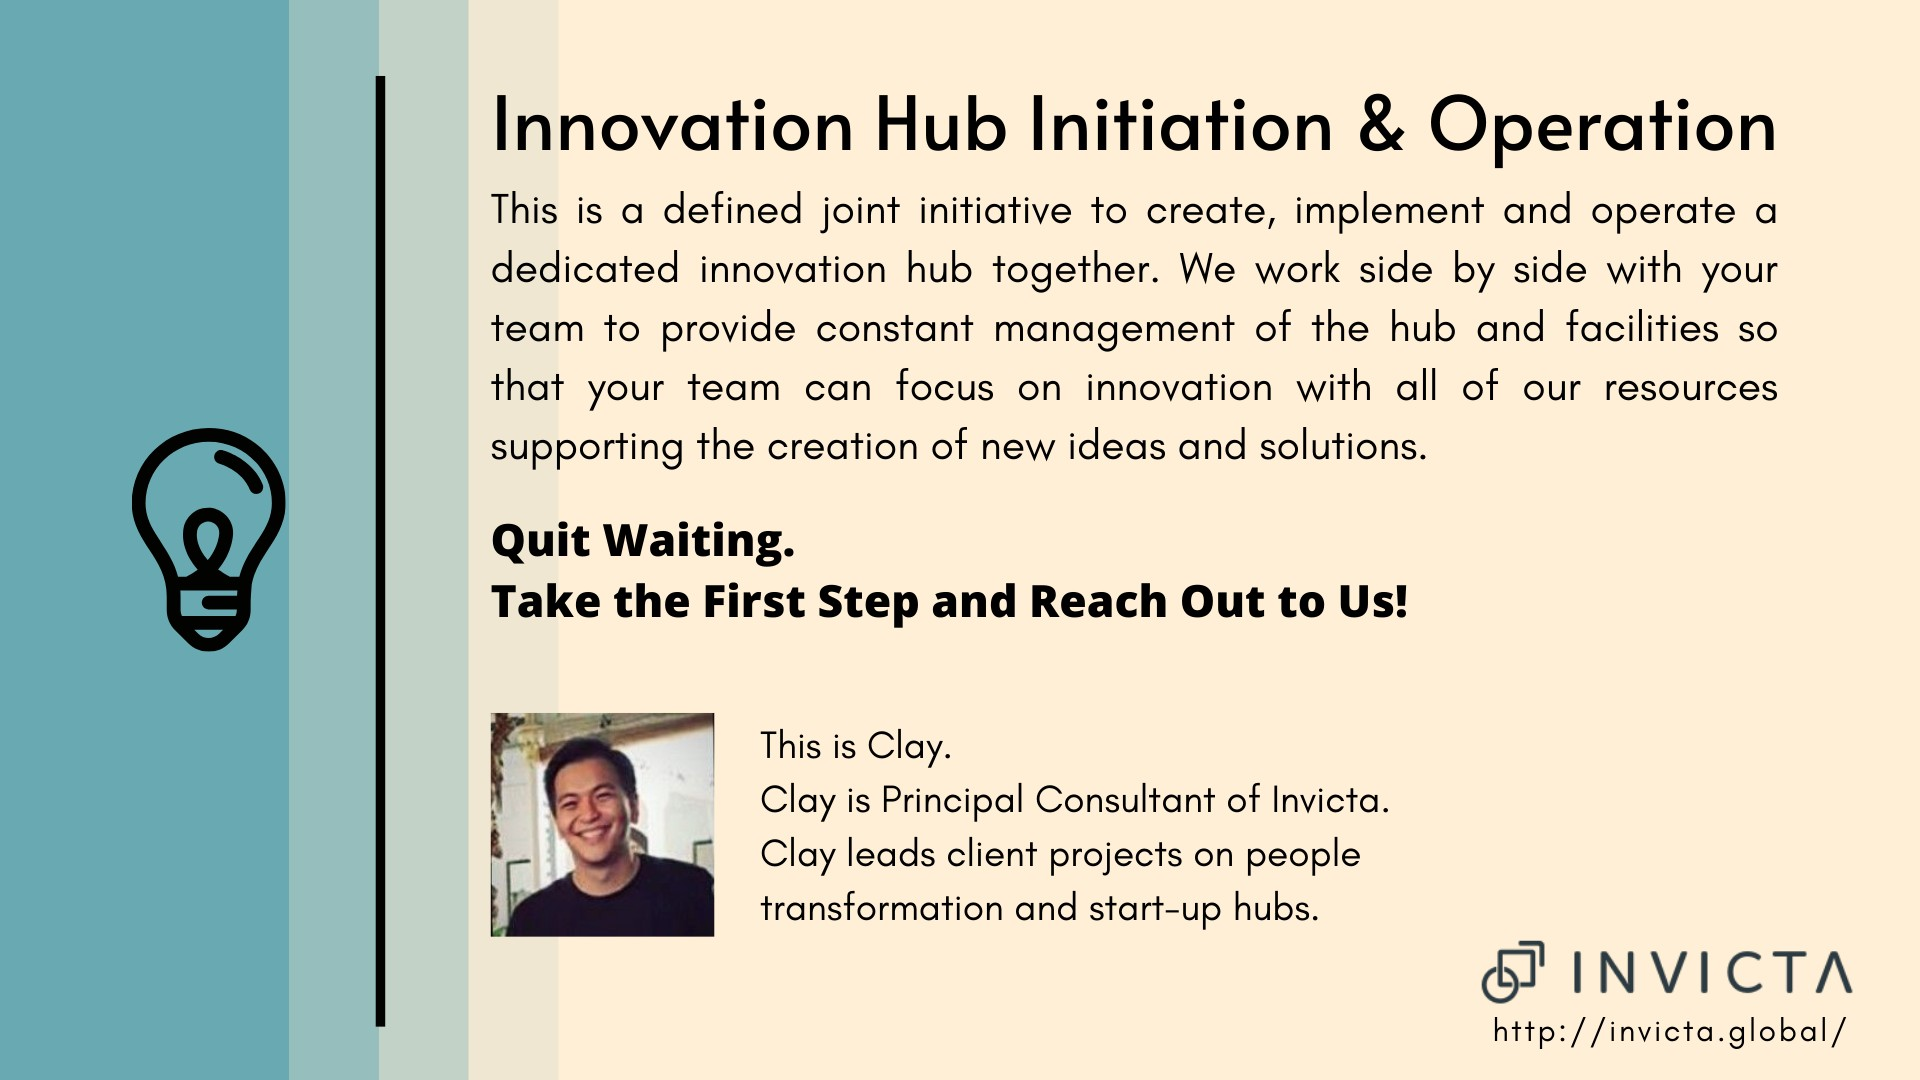 Invicta Innovation Singapore